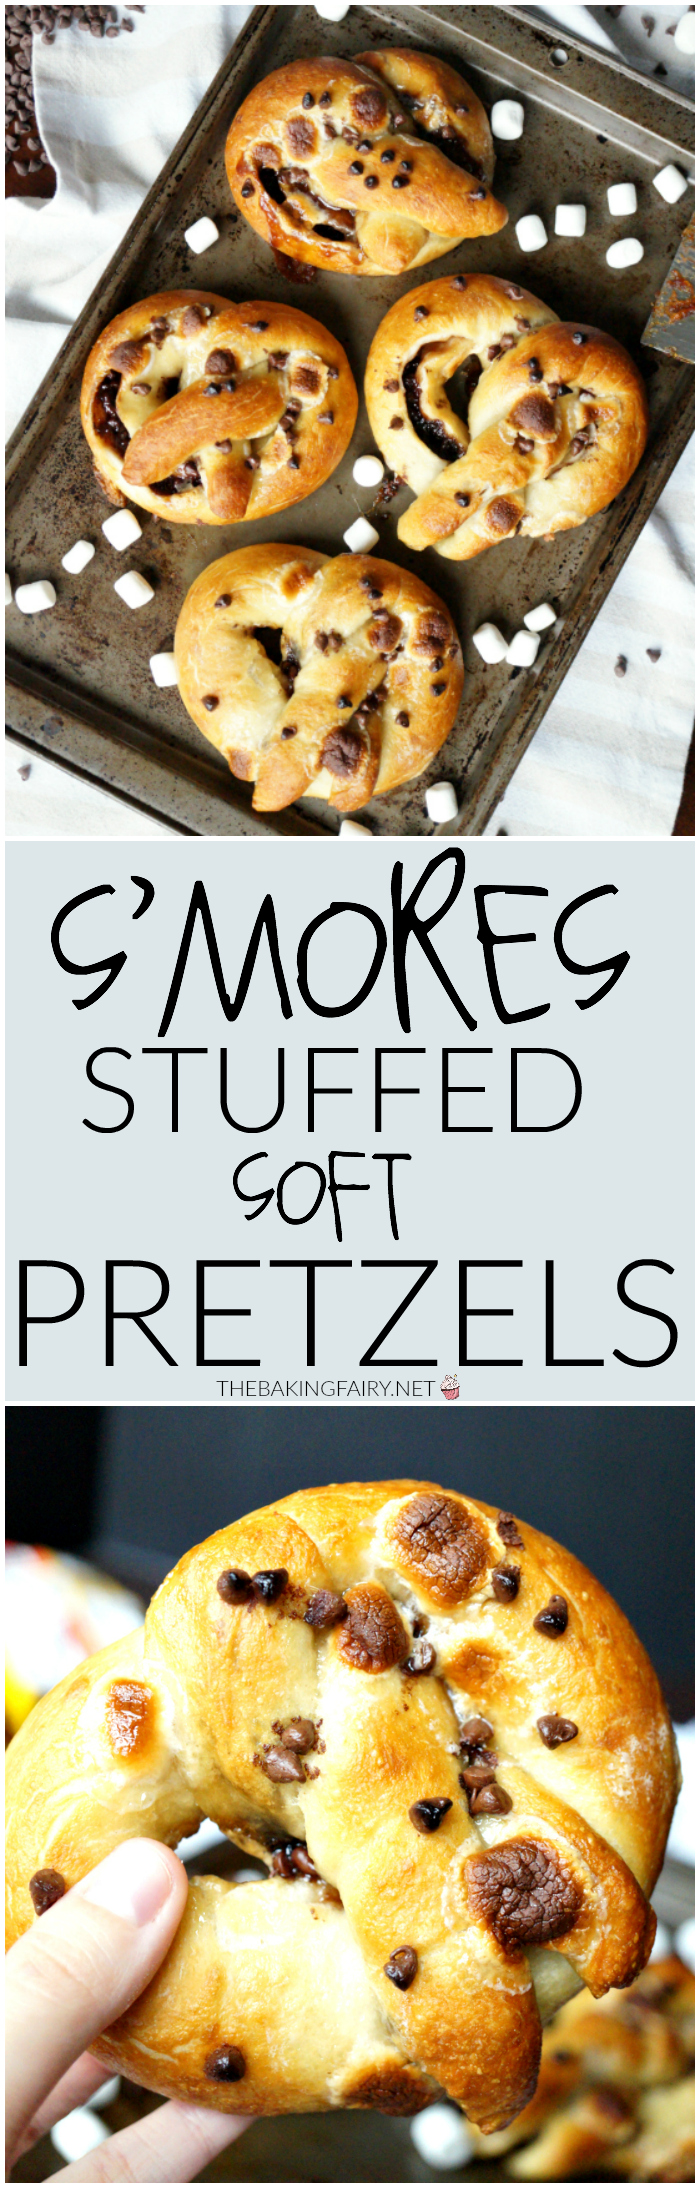 s'mores stuffed pretzels | The Baking Fairy